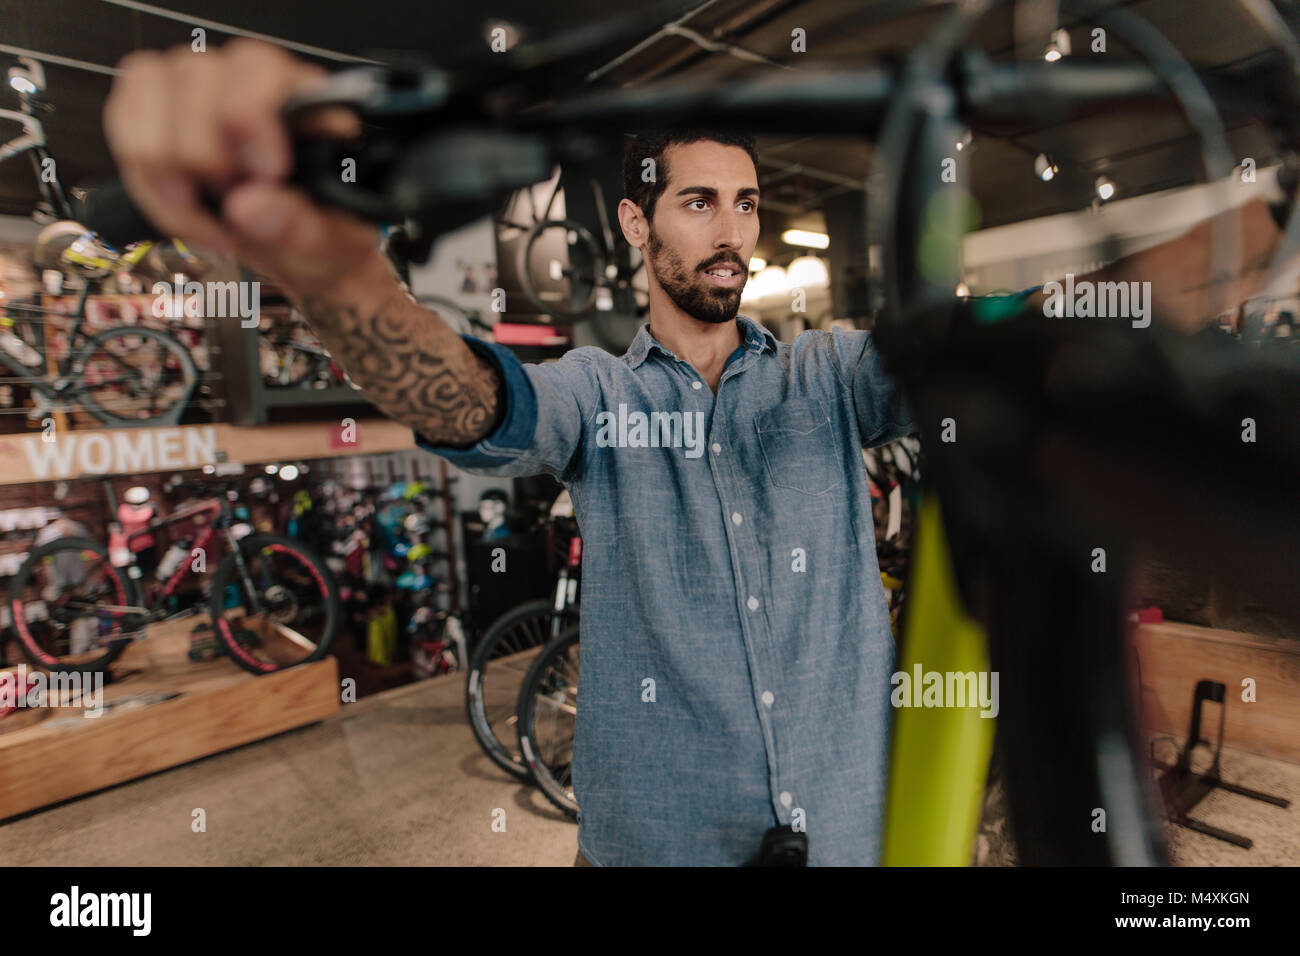 Man inspecting a bicycle handle for alignment at a showroom. Man at a bicycle showroom looking at bicycles. - Stock Image